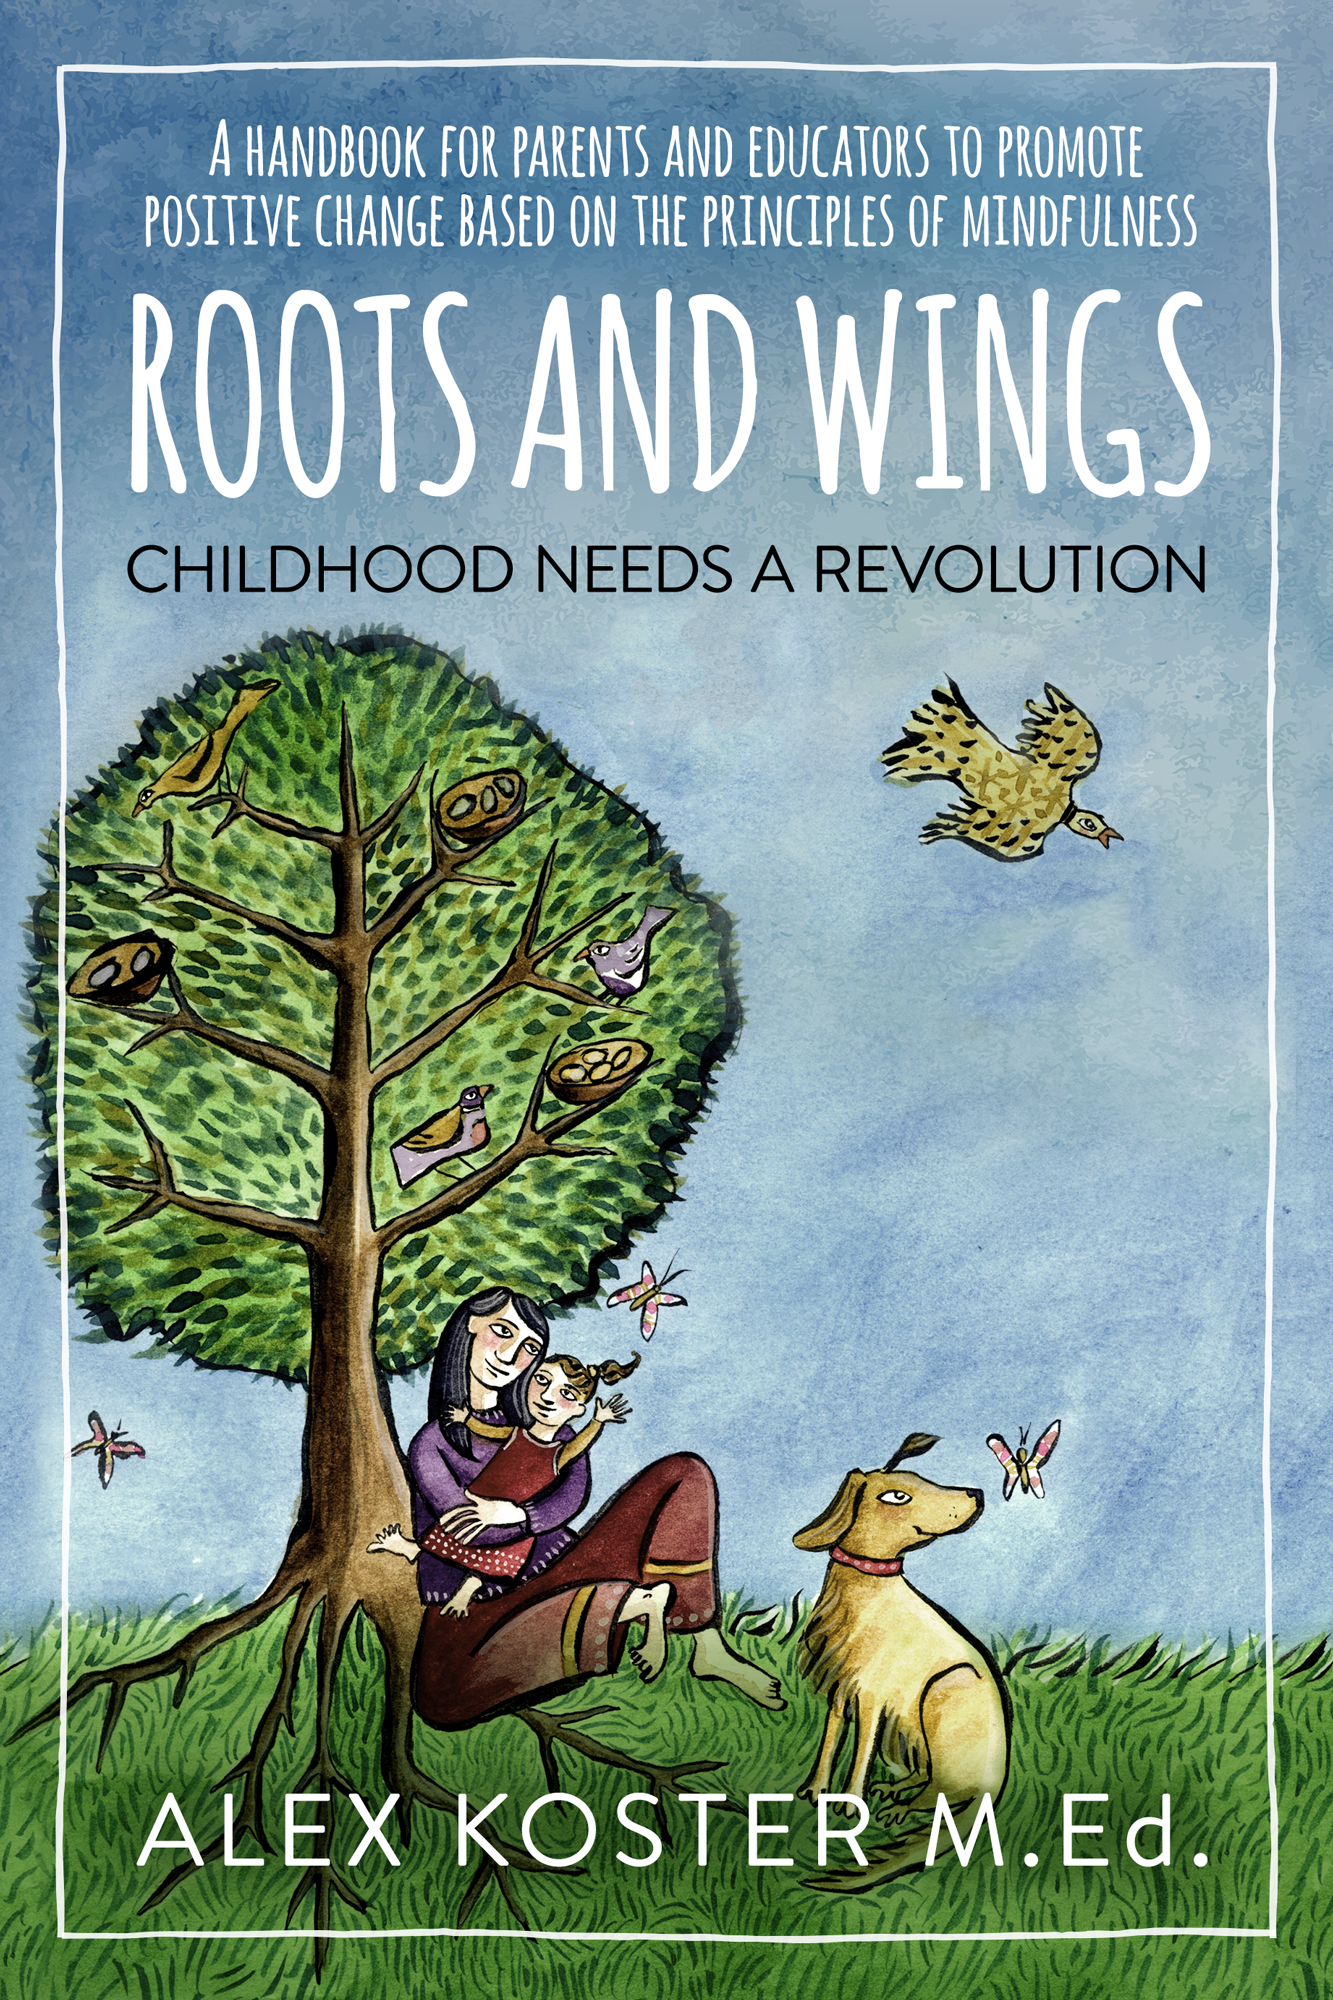 ROOTS AND WINGS - CHILDHOOD NEEDS A REVOLUTION